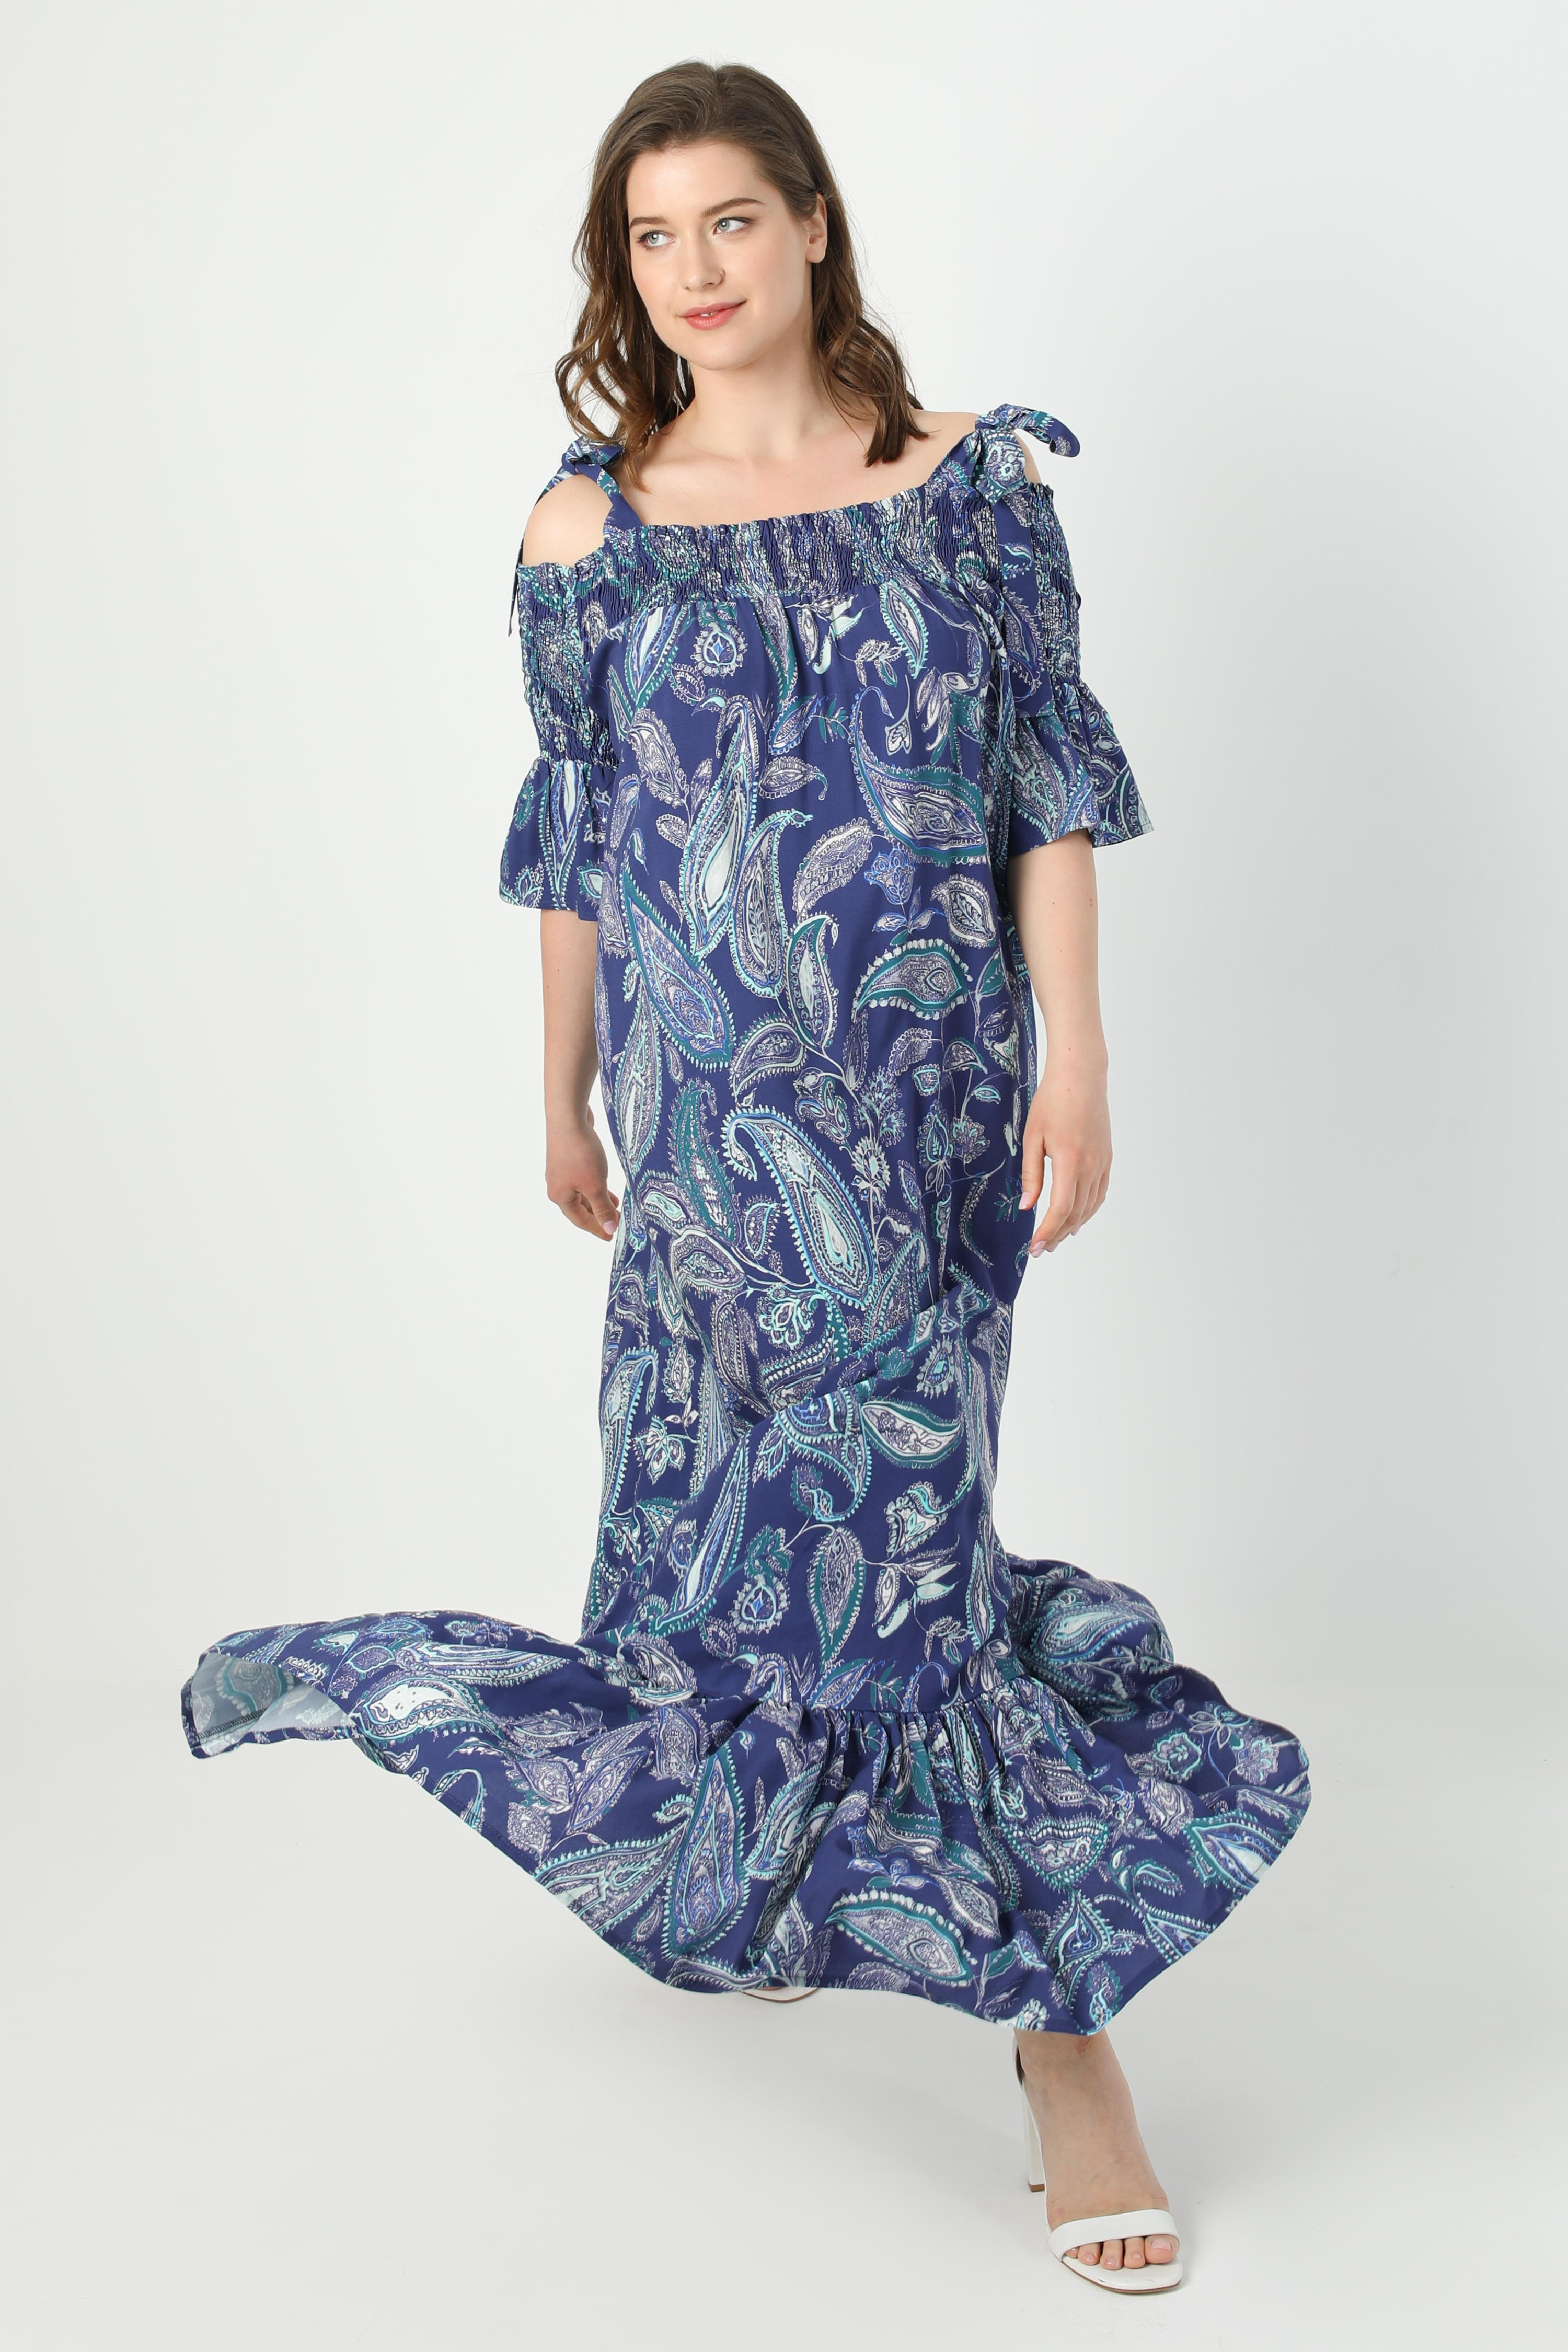 Printed dress with straps and smocking (shipping May 20/25)